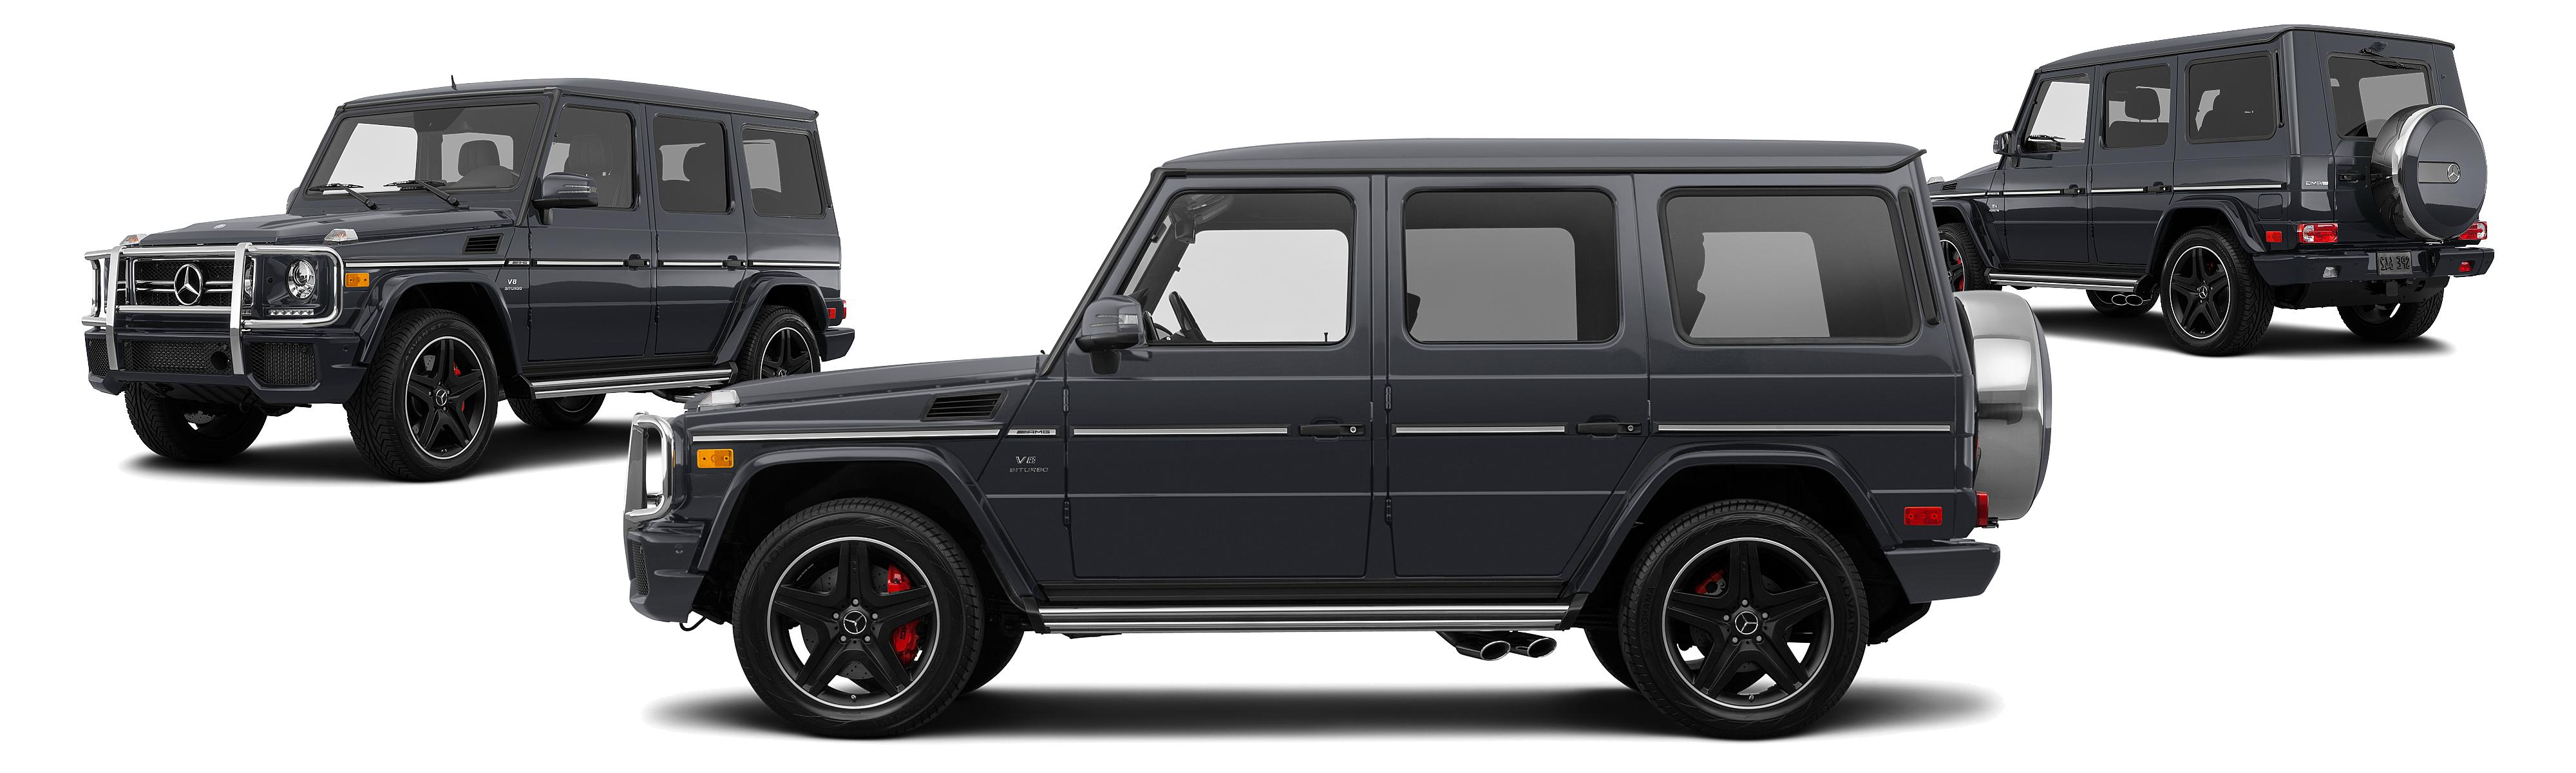 2014 Mercedes Benz G Class AWD G 63 AMG 4MATIC 4dr SUV Research